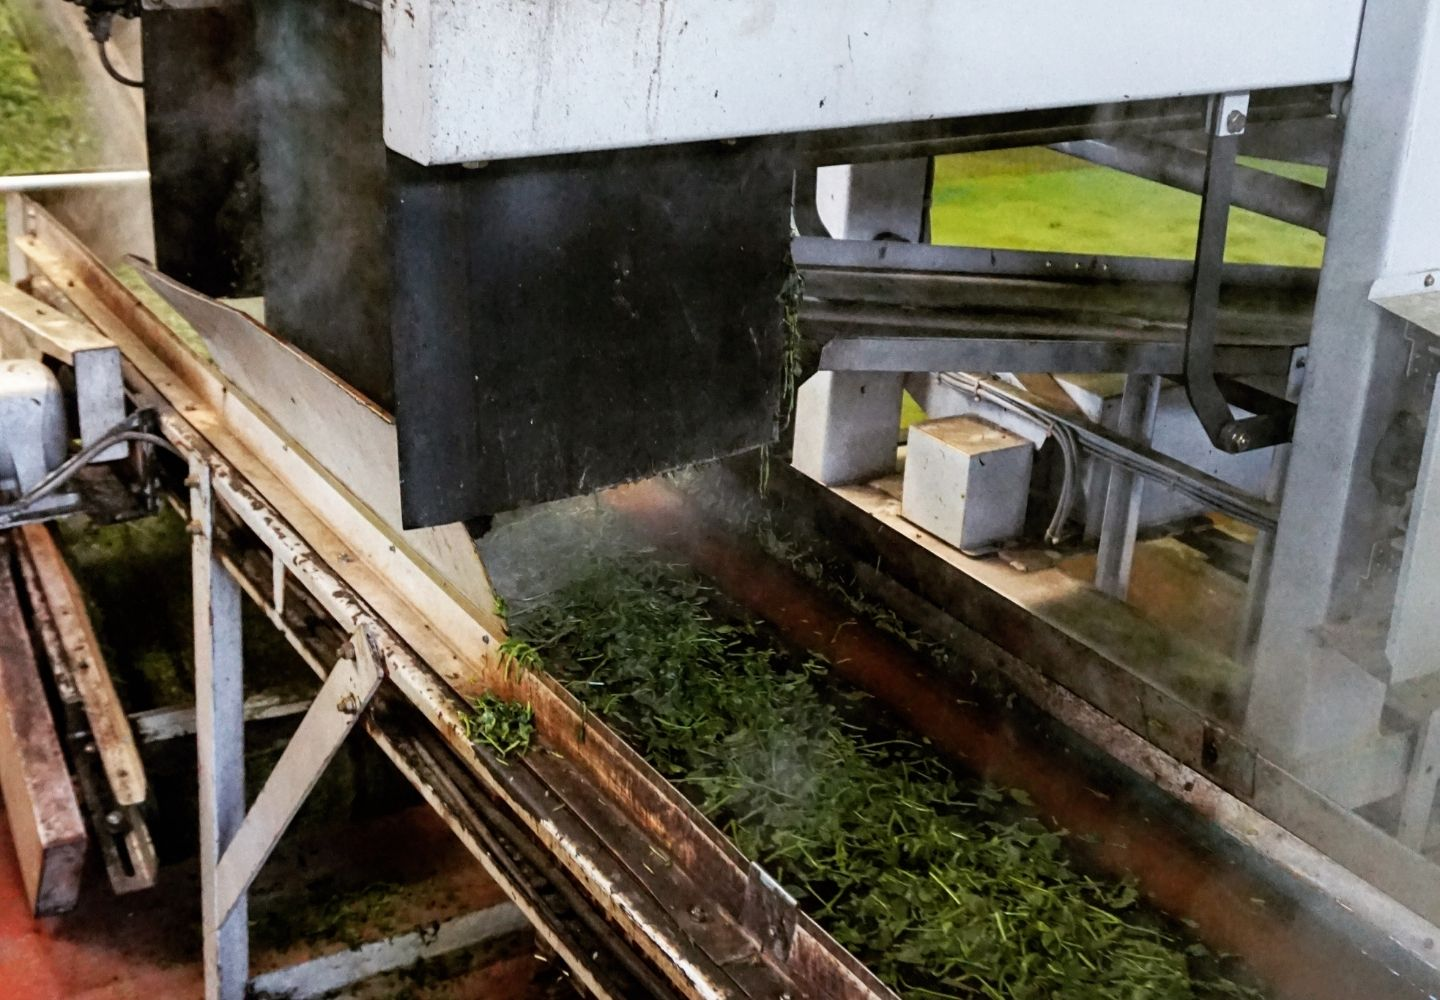 A photo showing a belt covered in freshly steamed tea leaves in Japan.